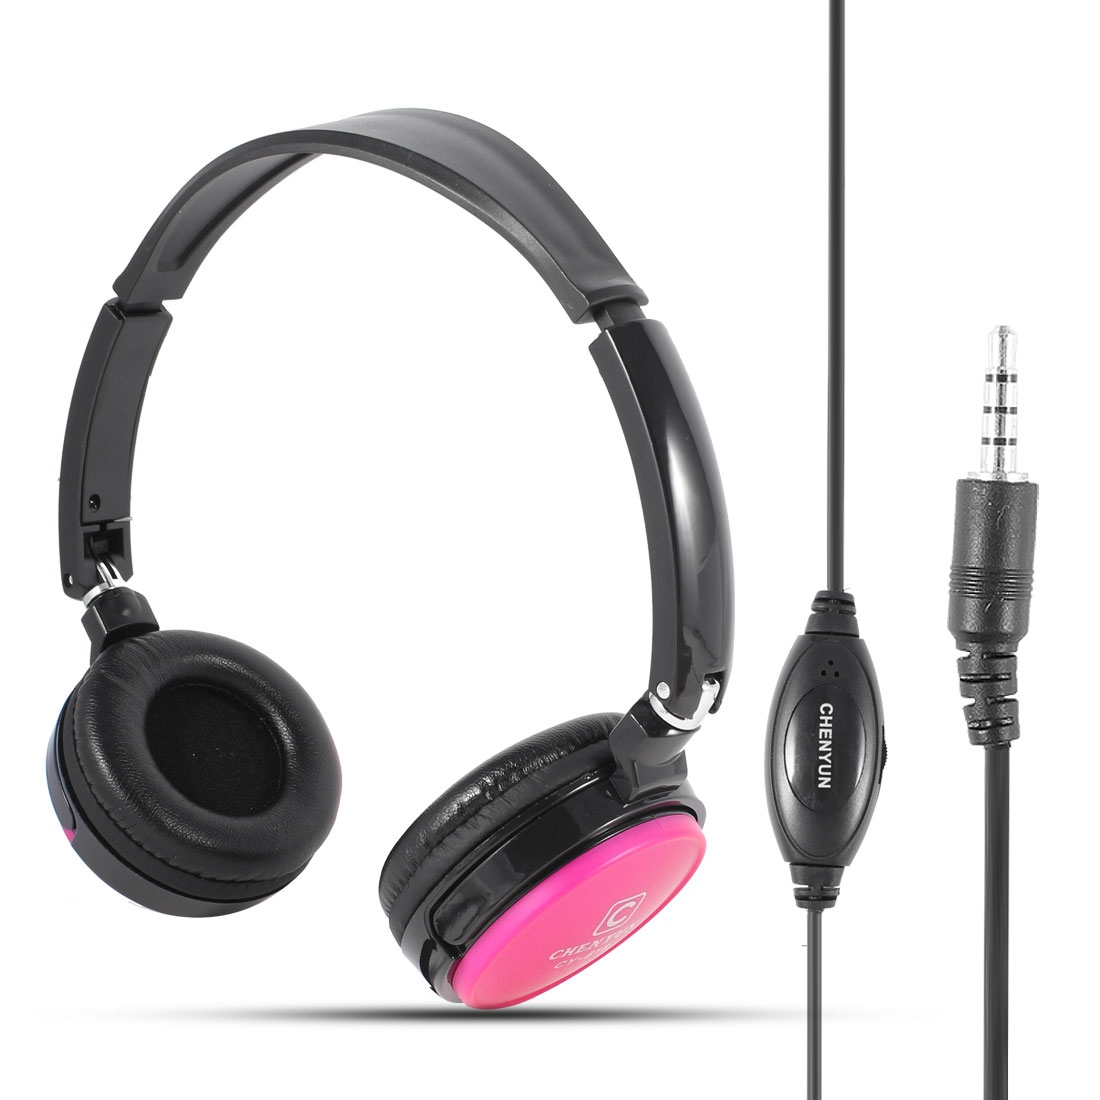 Adjustable Headband 3.5mm Connector Stereo Headphone Headset for PC Laptop Cellphone